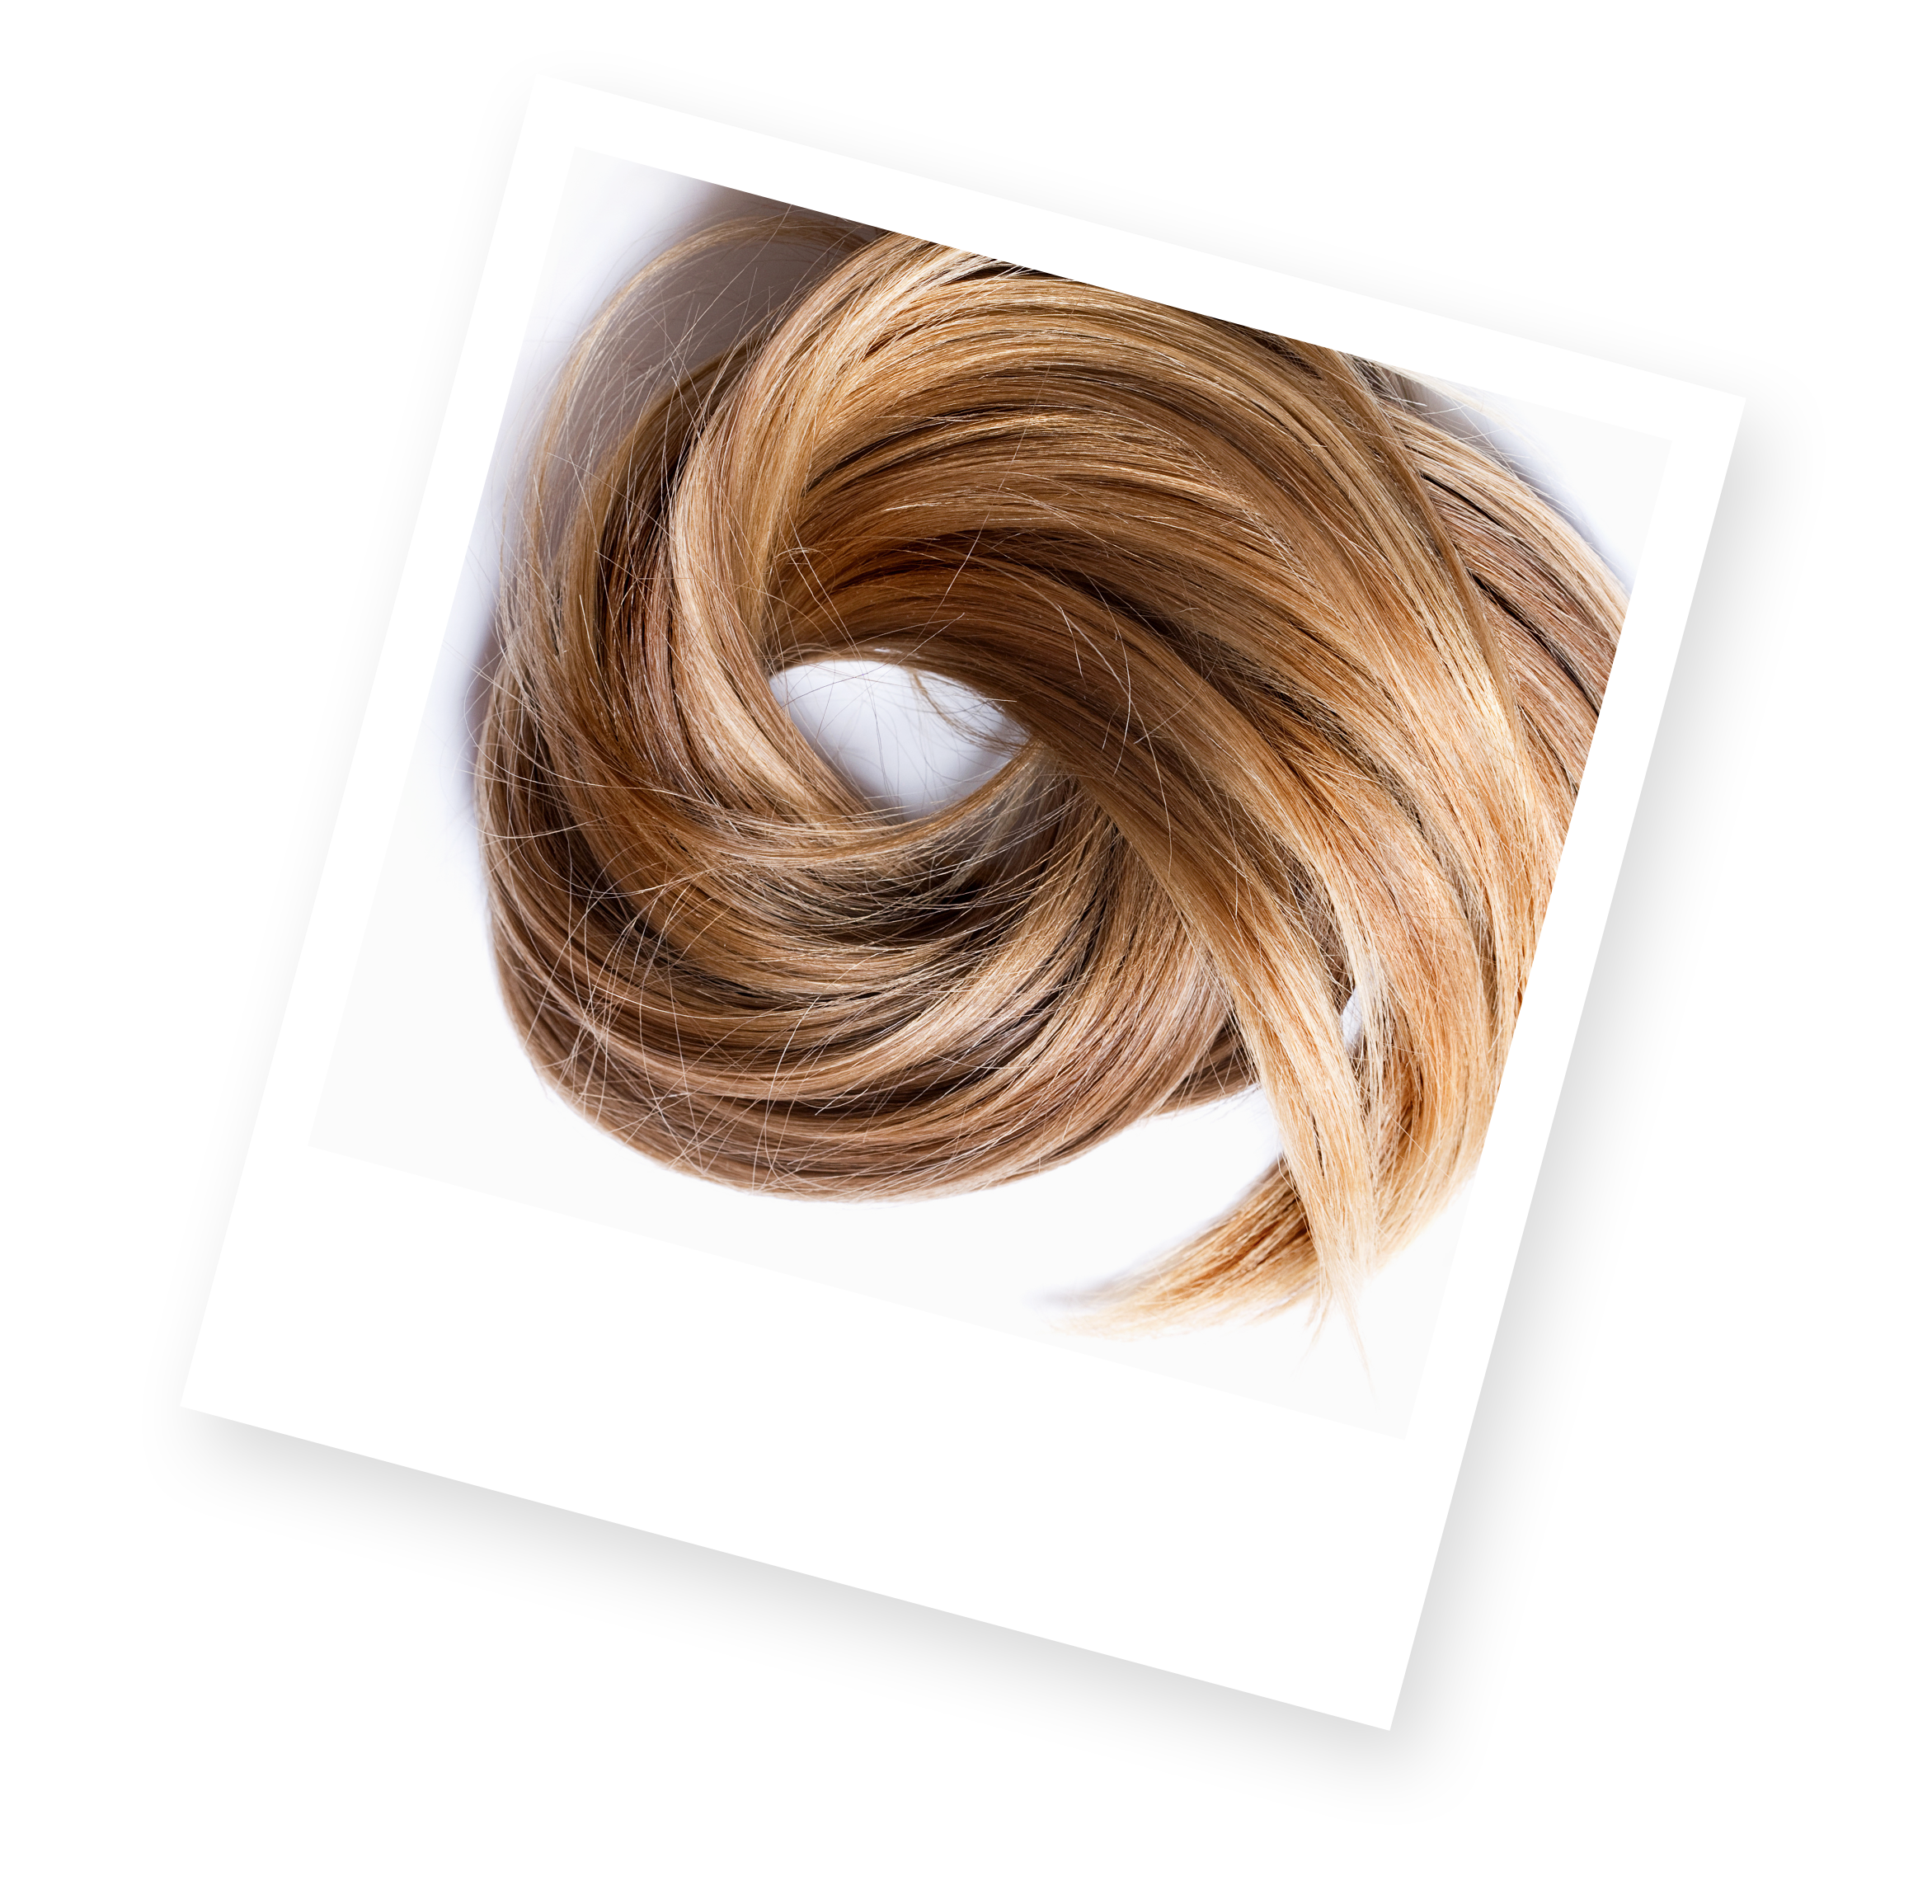 Png blonde hair. Introducing smart blondes photograph